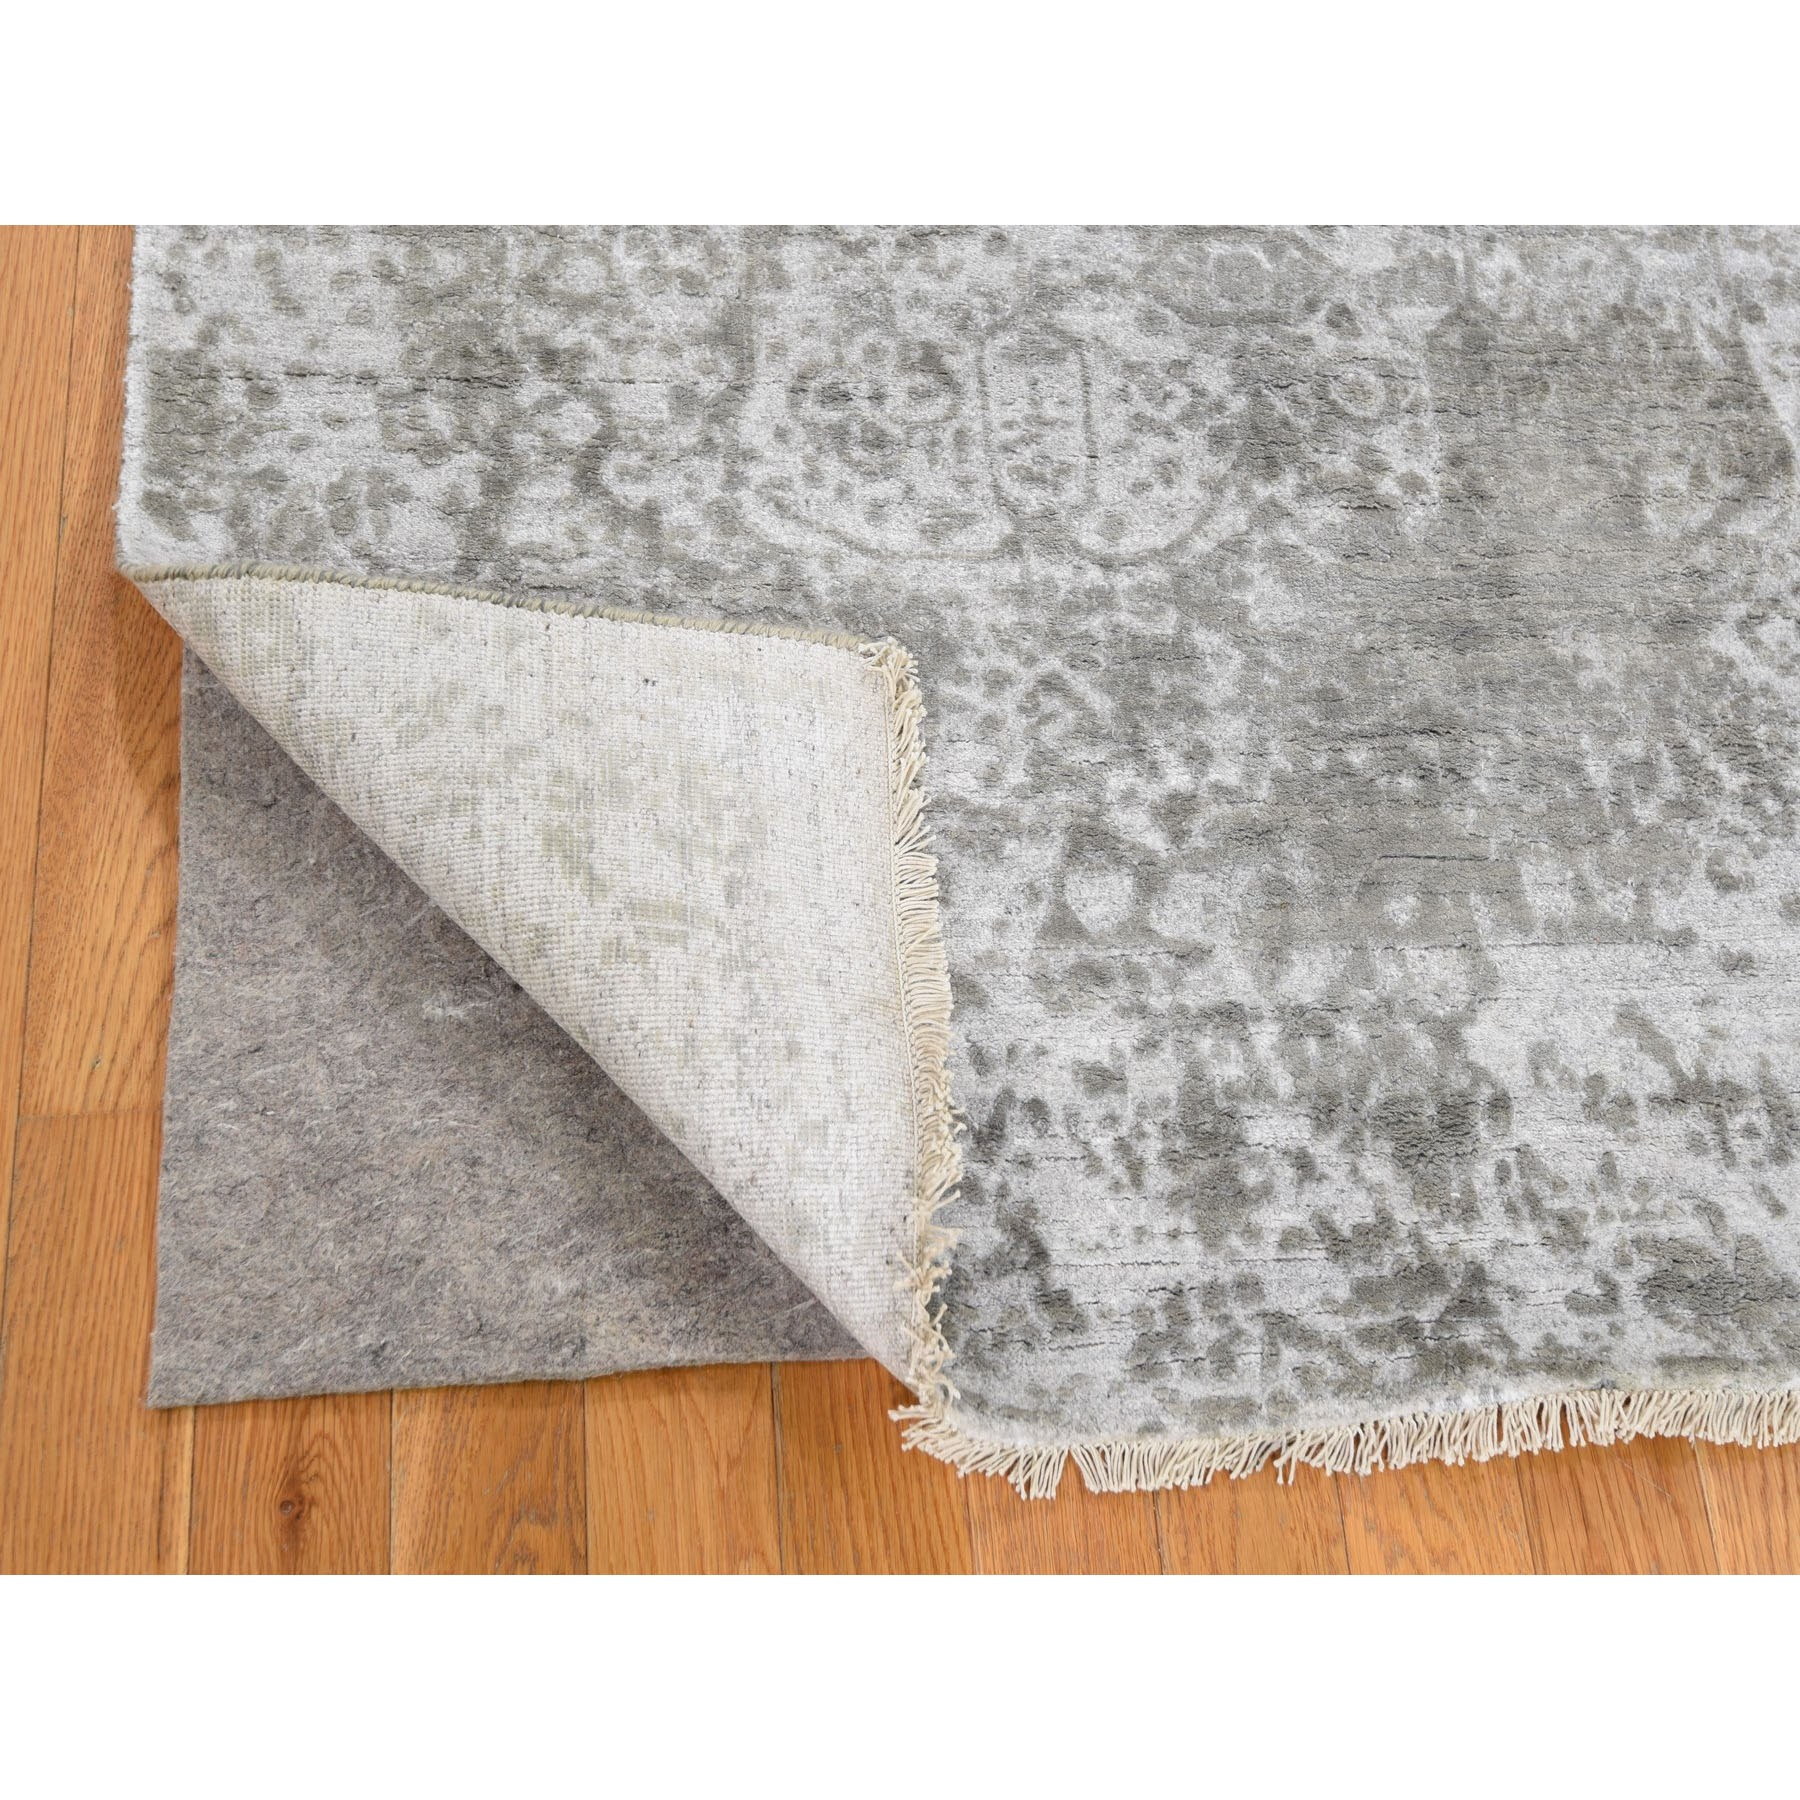 4'x6' Silver-Dark Gray Erased Persian Design Wool and Pure Silk Hand Knotted Oriental Rug